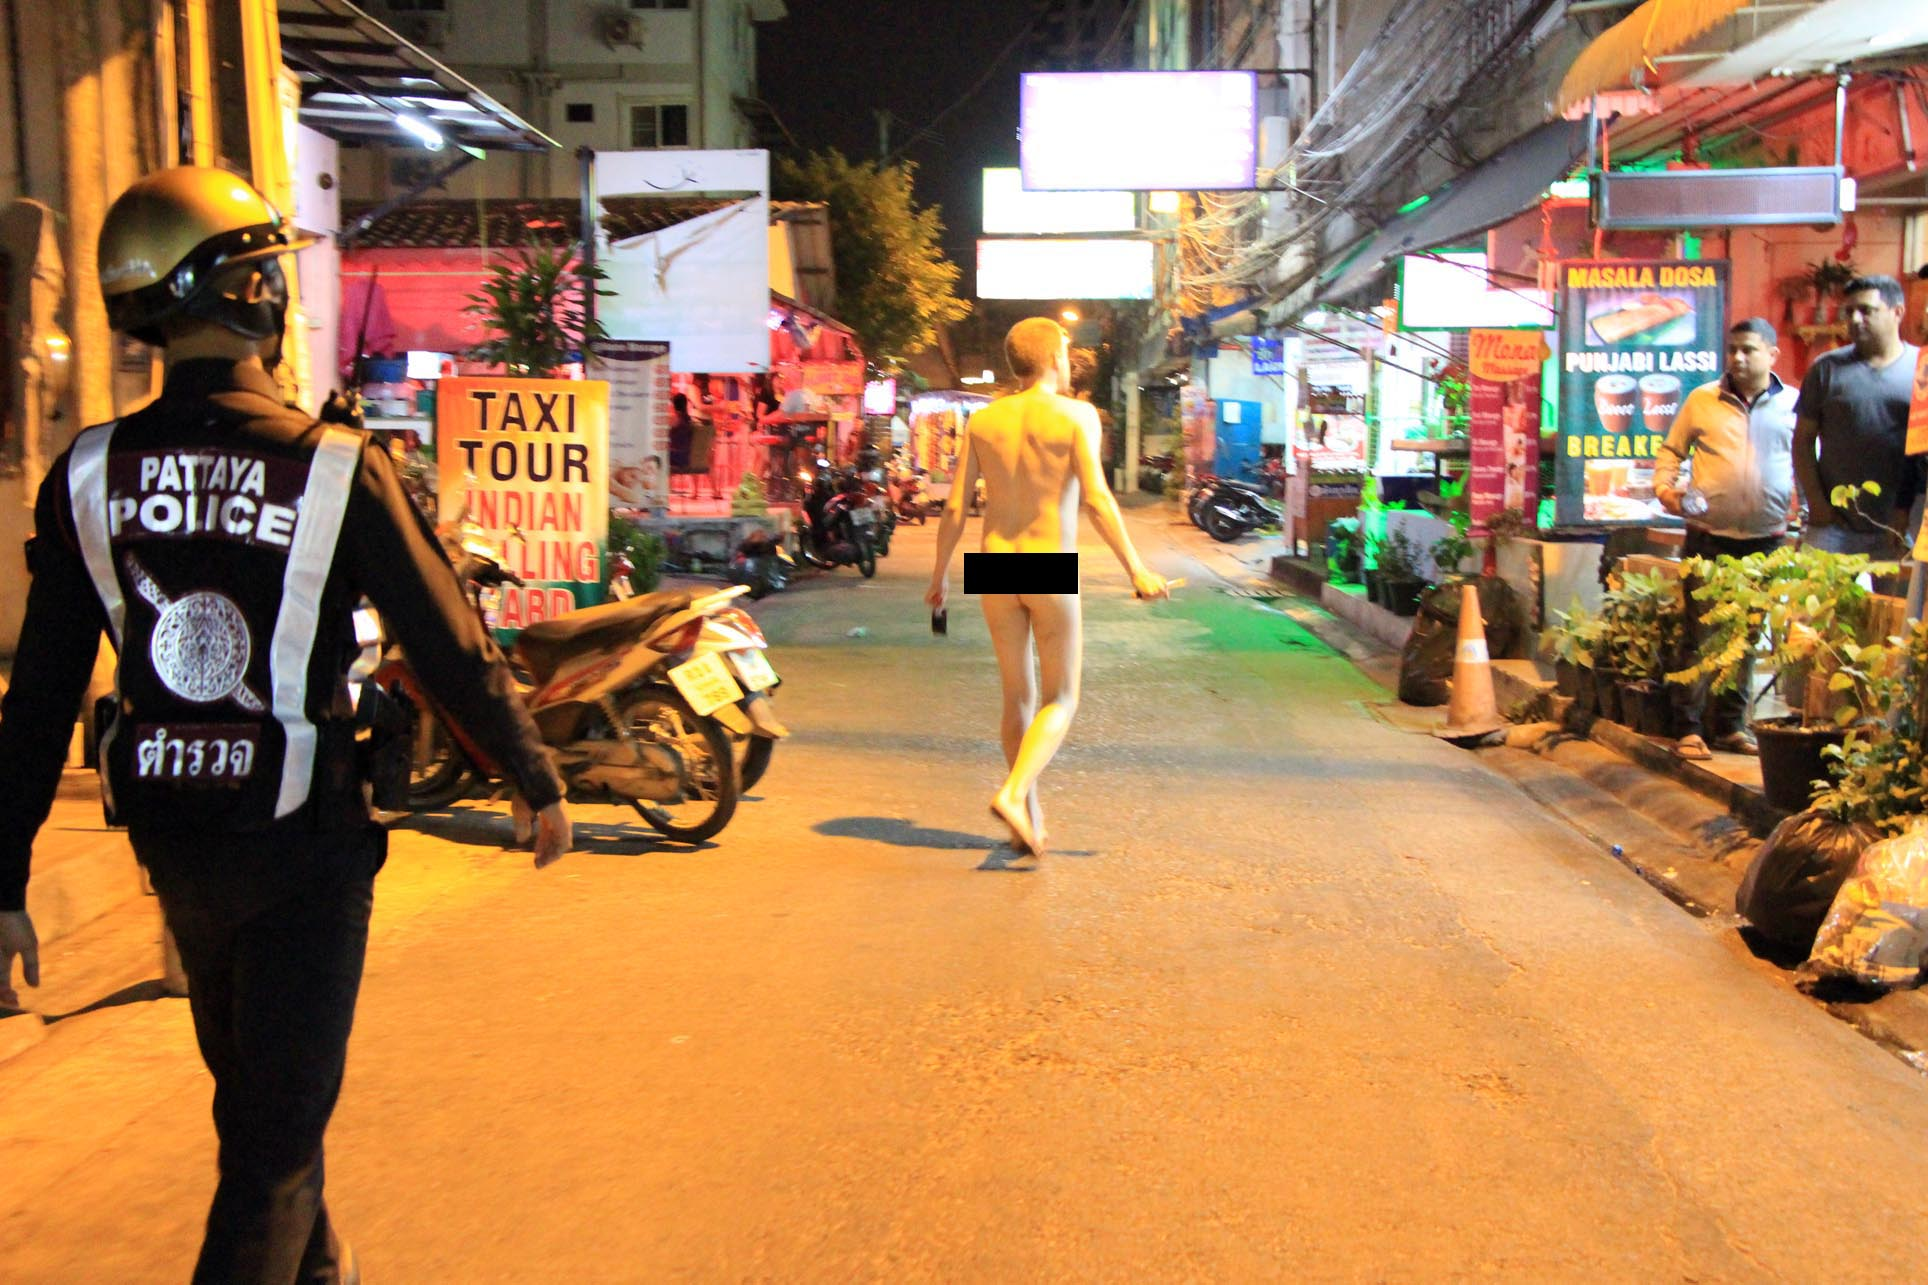 A naked foreigner armed with a knife was arrested for threatening people near a market in Central Pattaya. The reason for the strange behavior was not immediately known.